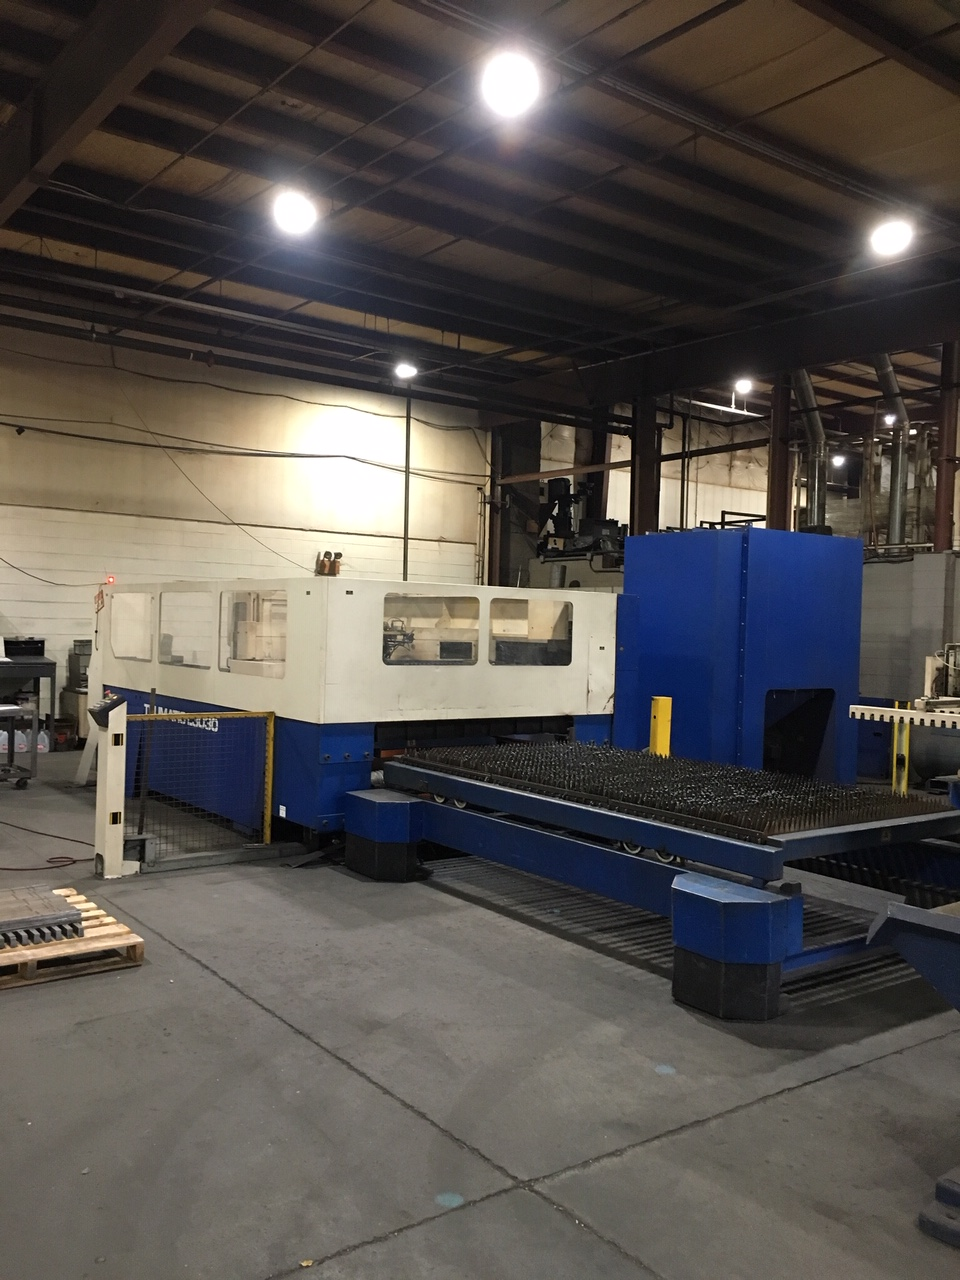 Trumpf Trumatic L3030 3,000 Watt CO2 Laser